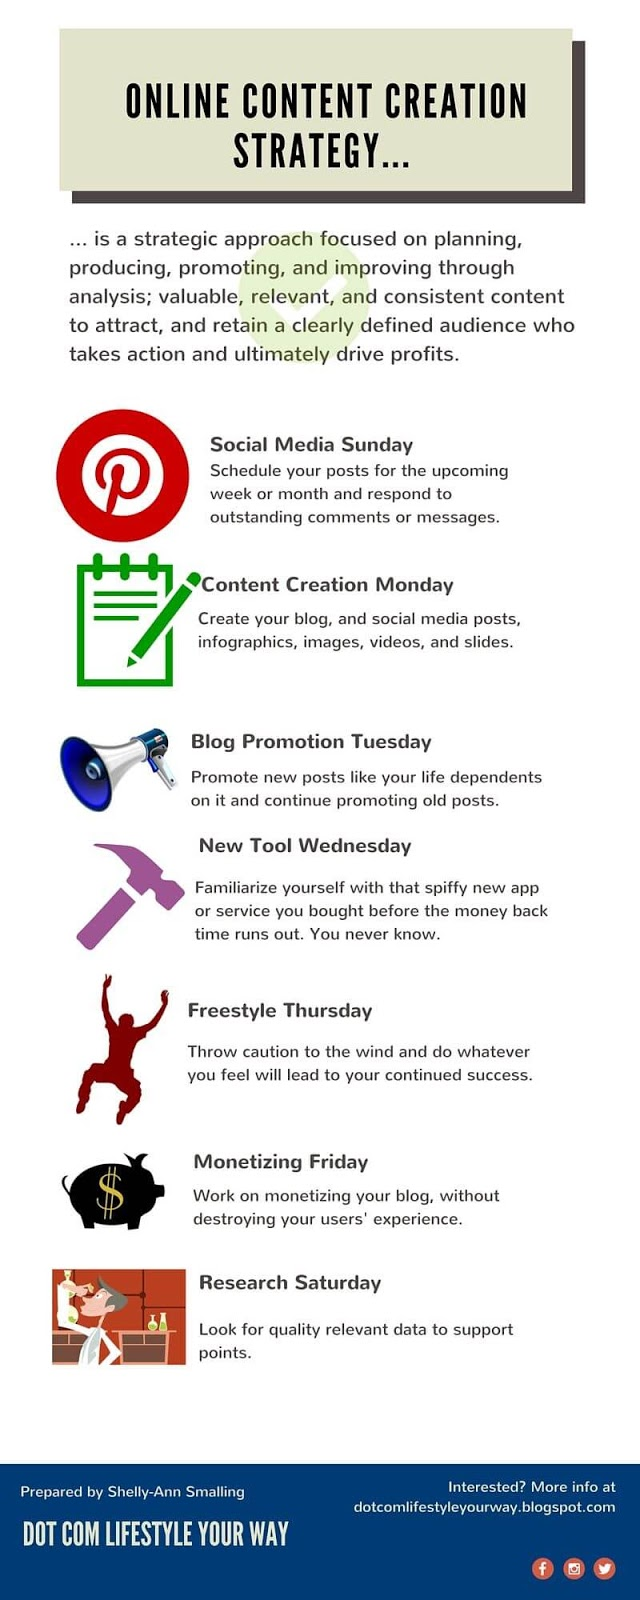 Online Content Creation Strategy #Infographic